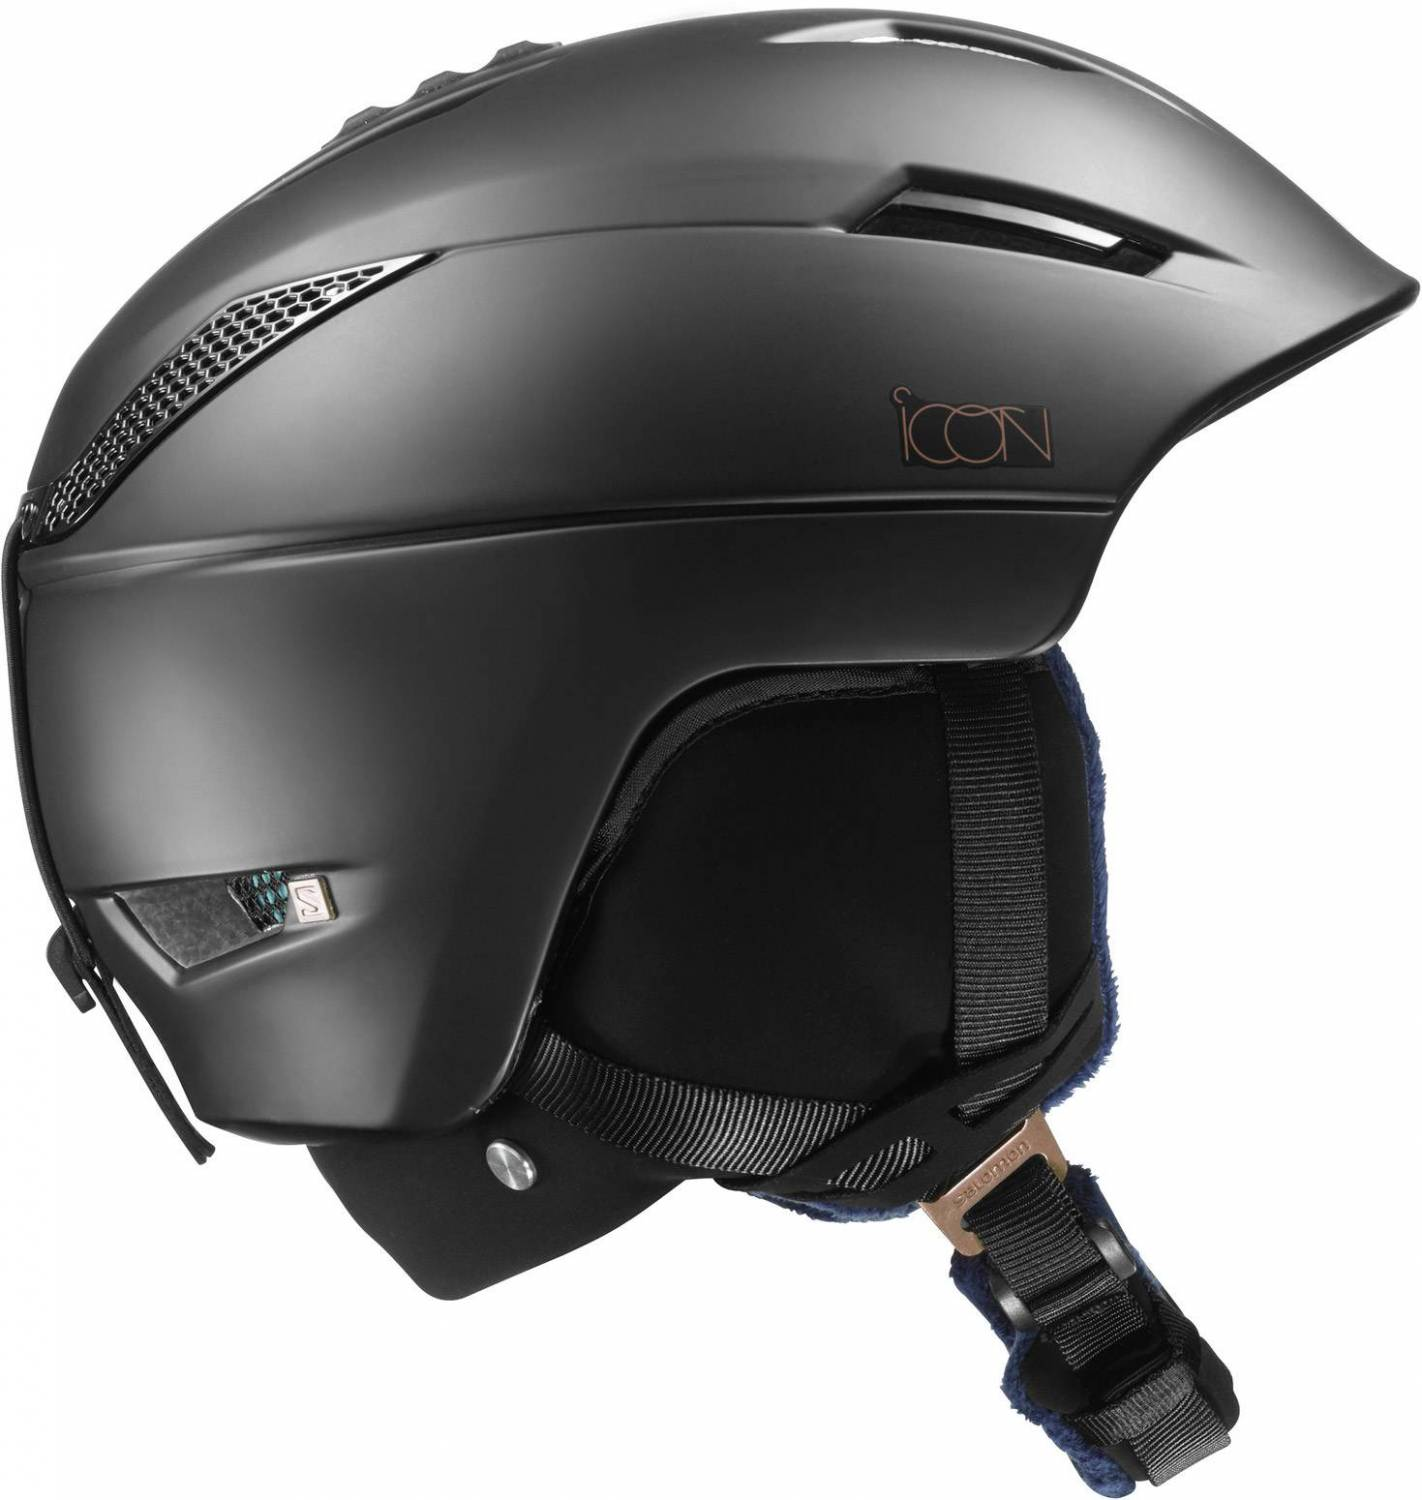 Salomon Icon Custom Air Skihelm (Größe: 53-56 cm, black) Sale Angebote Burg (Spreewald)